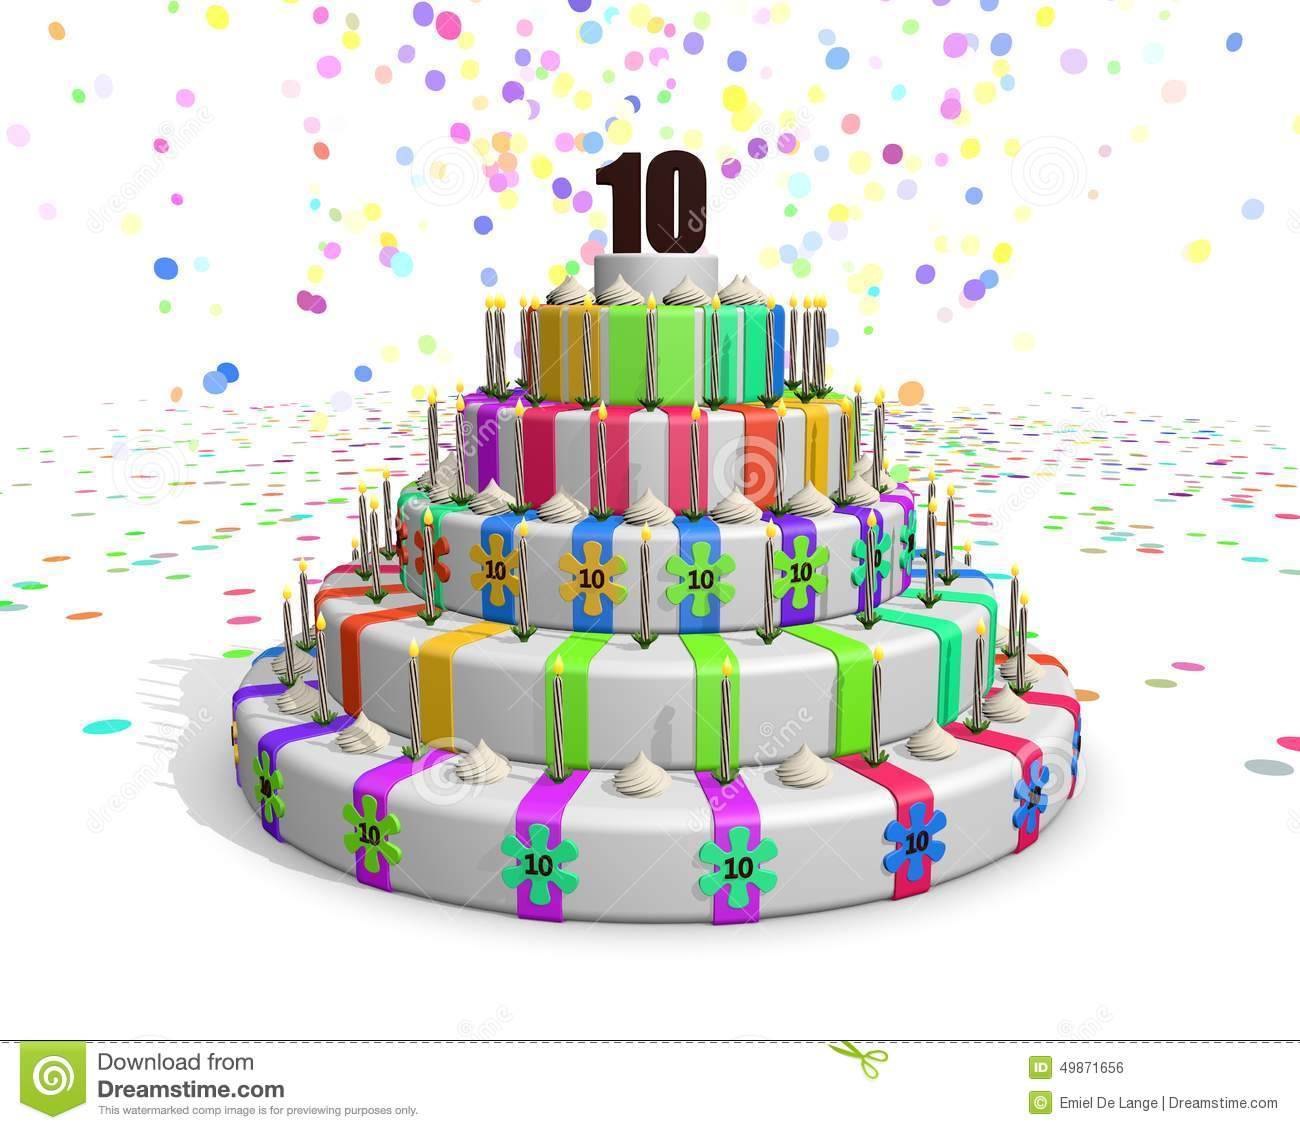 Draw Floor Plans App Colorful Rainbow Cake With On Top A Chocolate Number 10